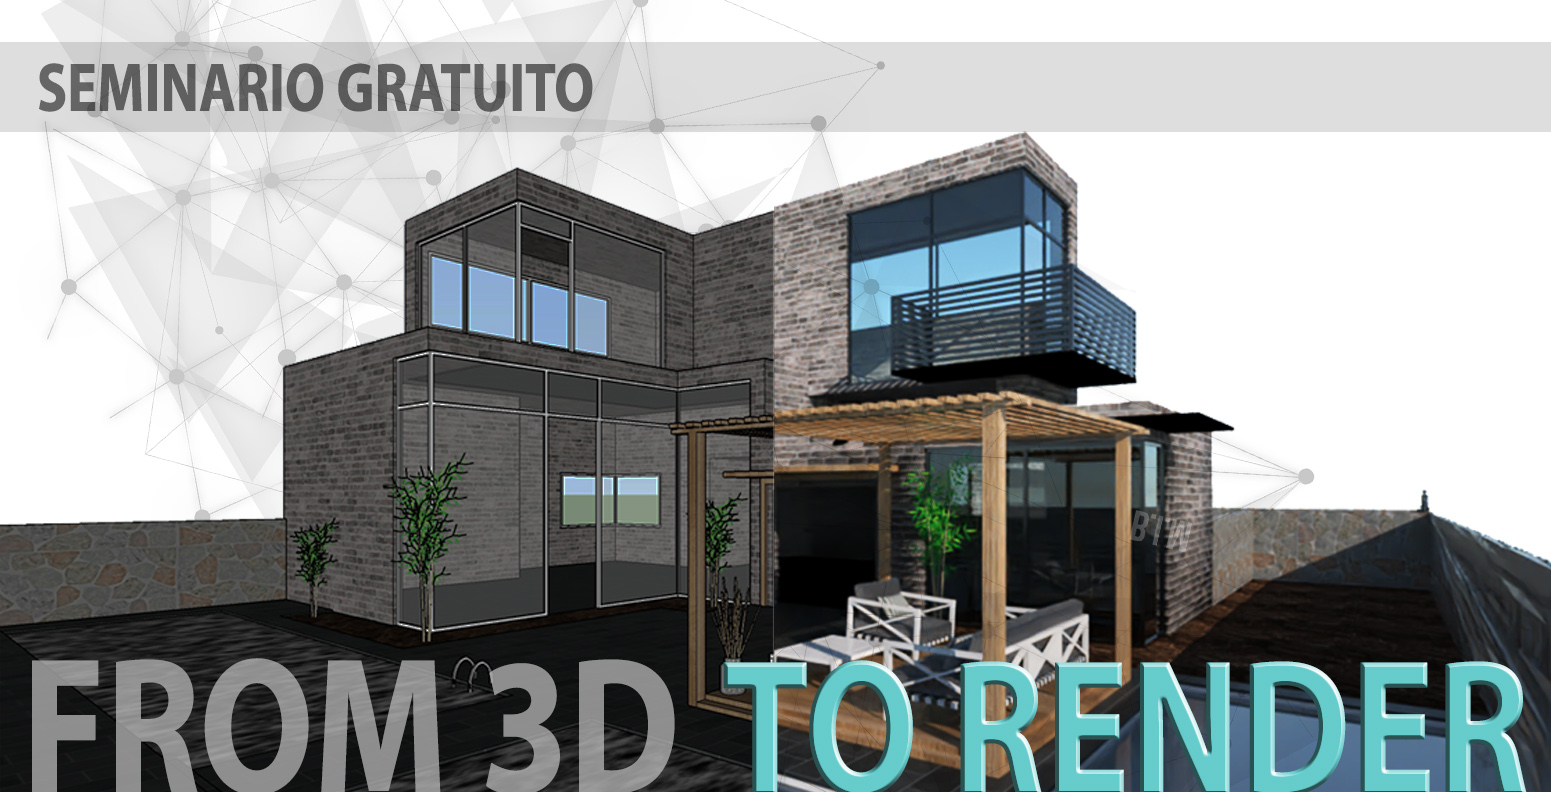 TORINO 15/05/2019 From 3D to Render: i plugin di rendering per SketchUp Pro